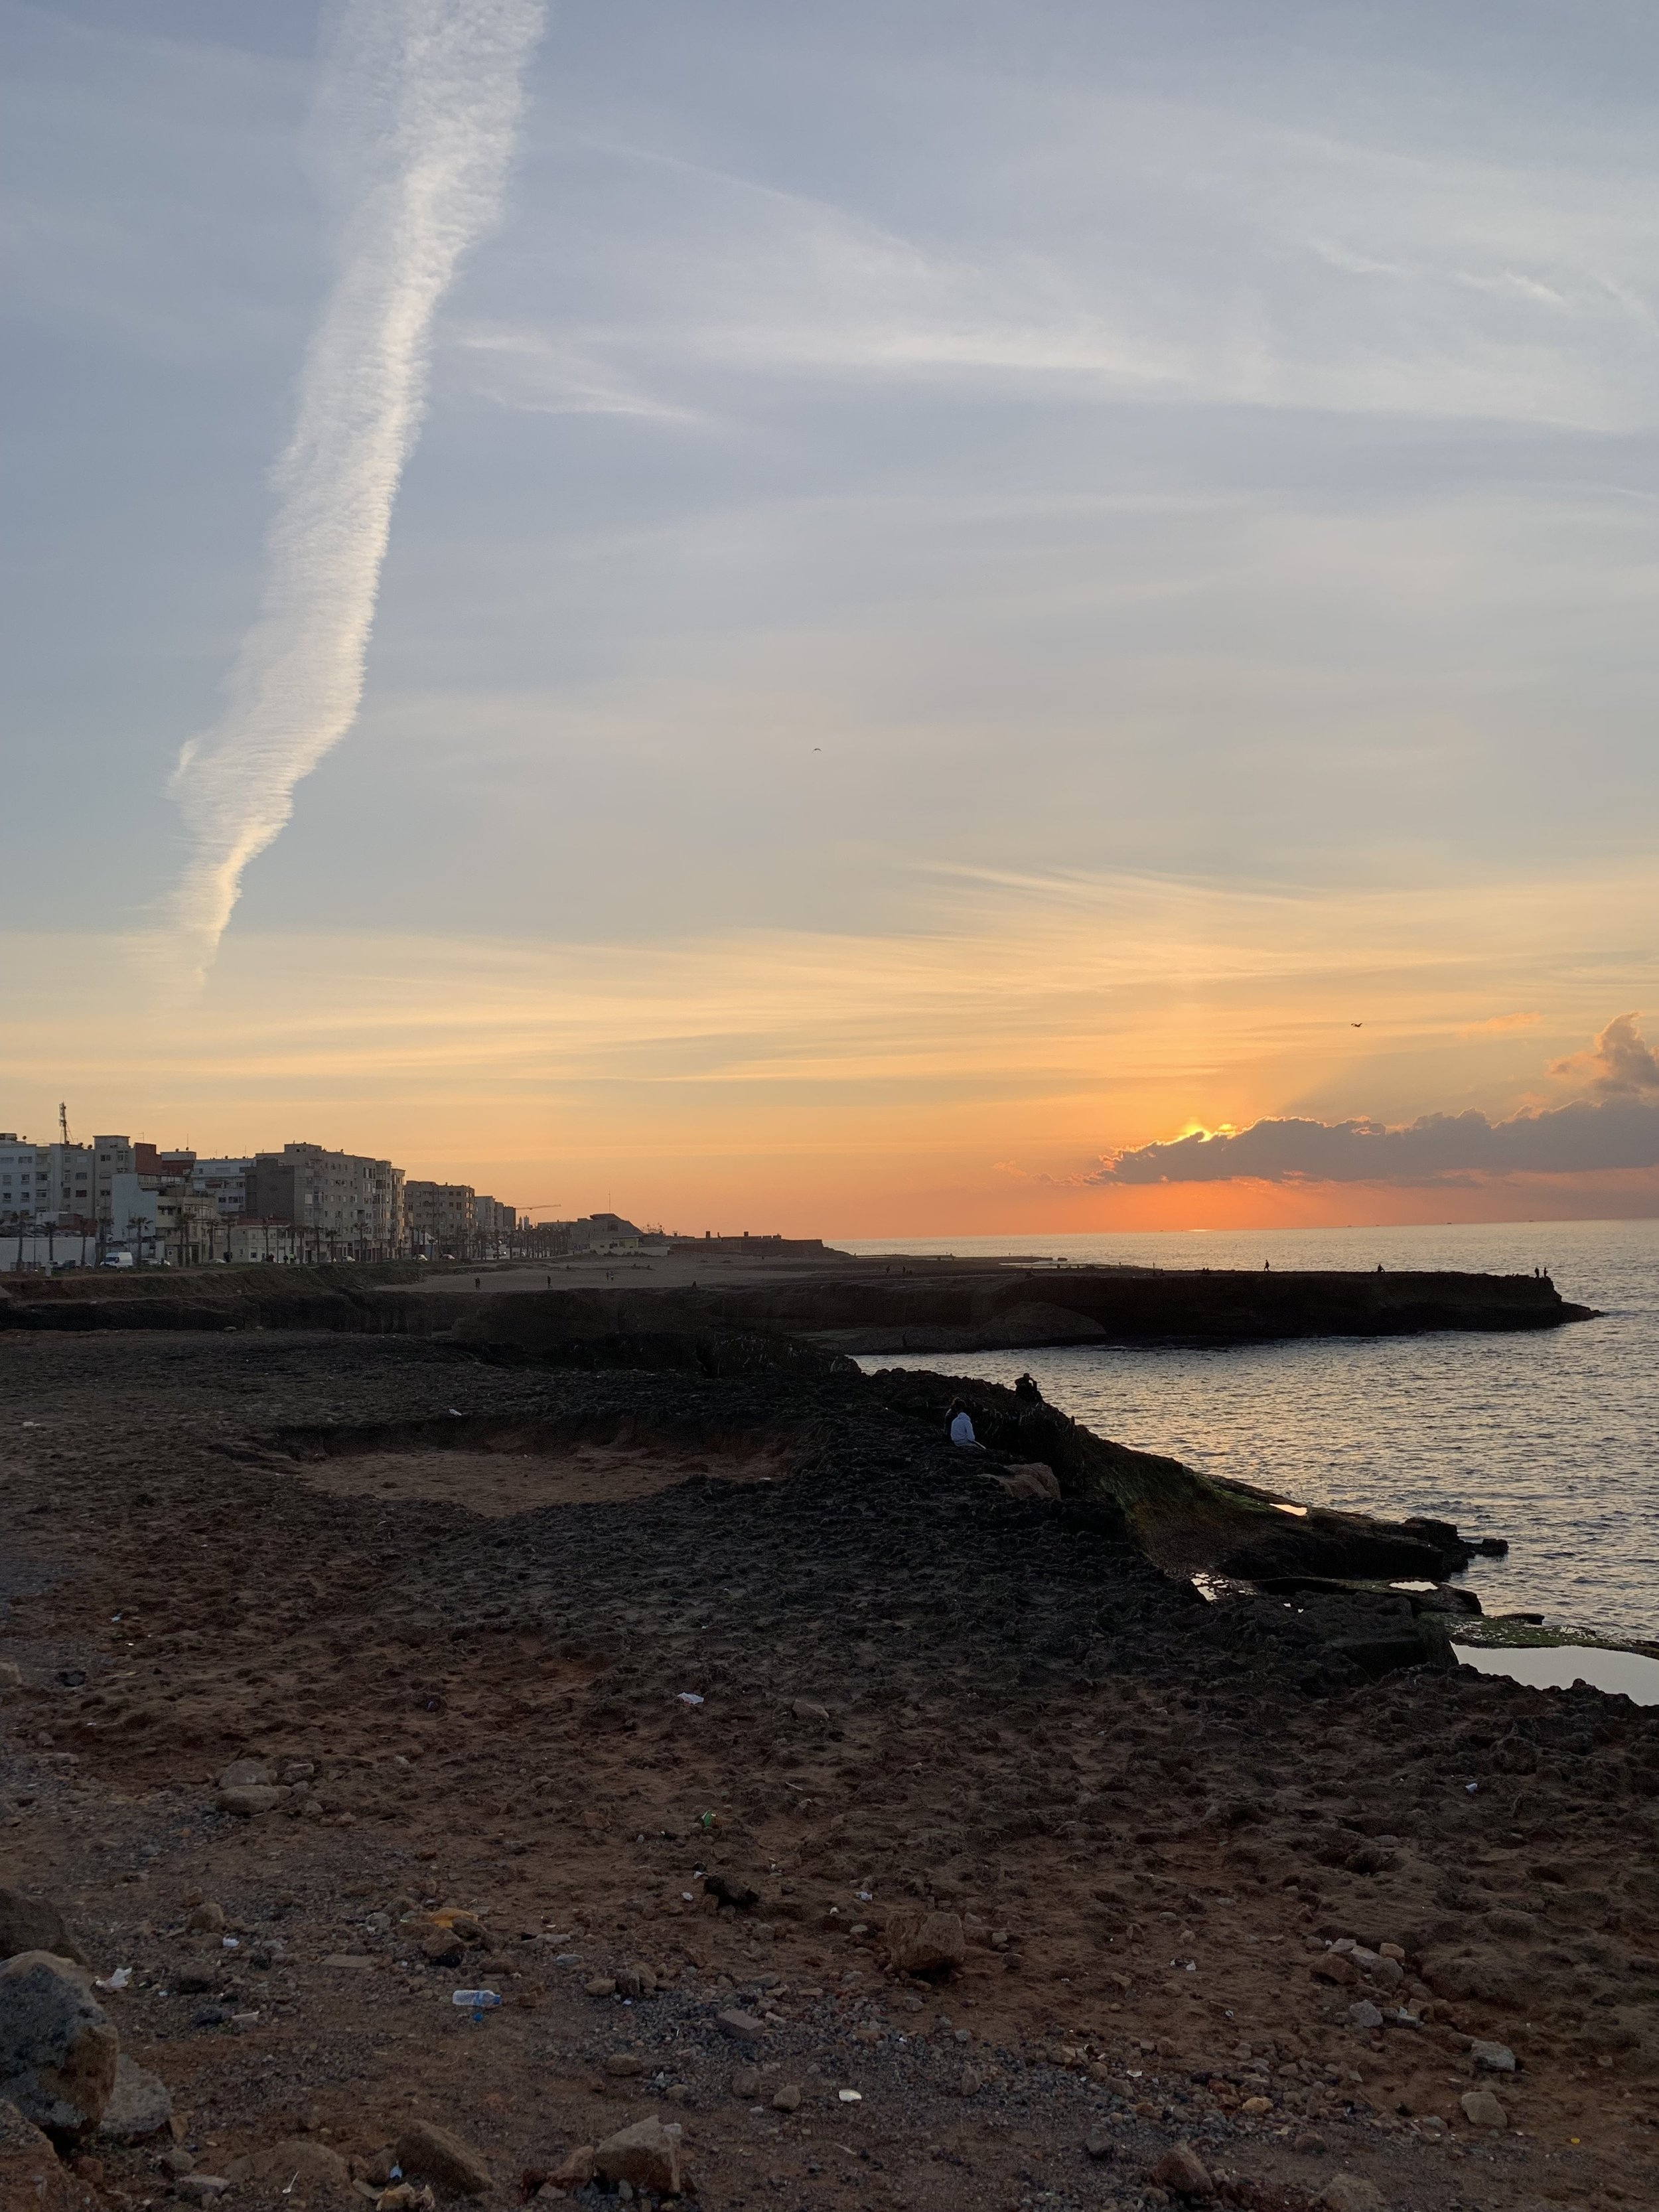 The sun sets on the Moroccan coast. As the sun slowly dips behind the clouds and past the horizon, the sunset ushers in the bustling Rabat nightlife. Photo Credit: M. Aboko-Cole, Spring 2019.